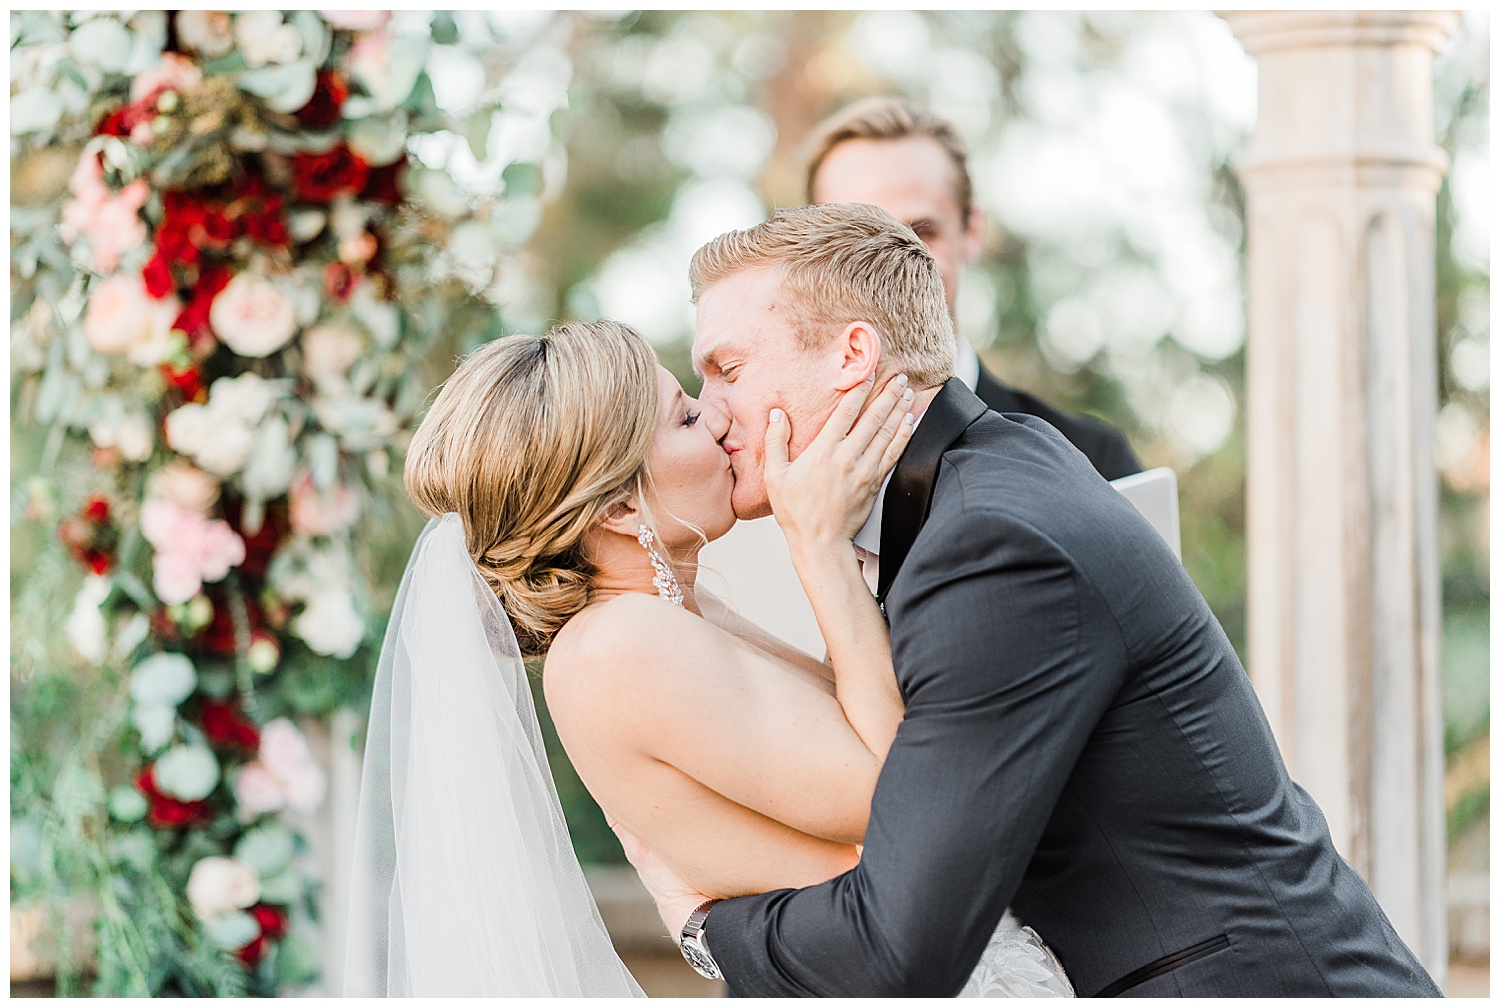 bride-and-groom-first-kiss-wedding-ceremony.jpg